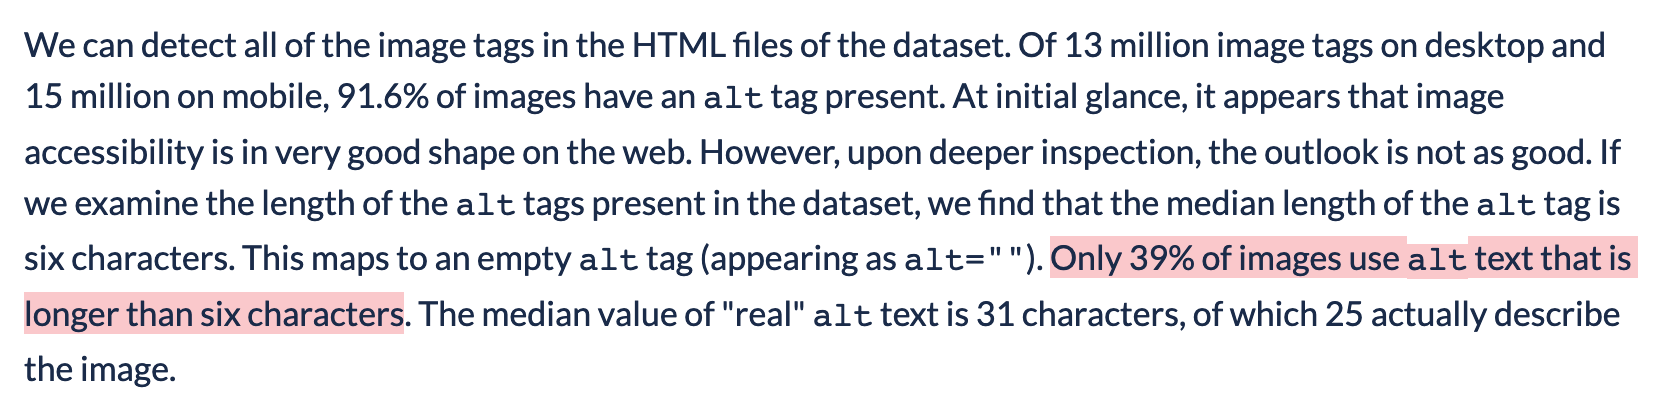 Paragraph from the almanac highlighting the following sentence: Only 39% of images use alt text that is longer than six characters.